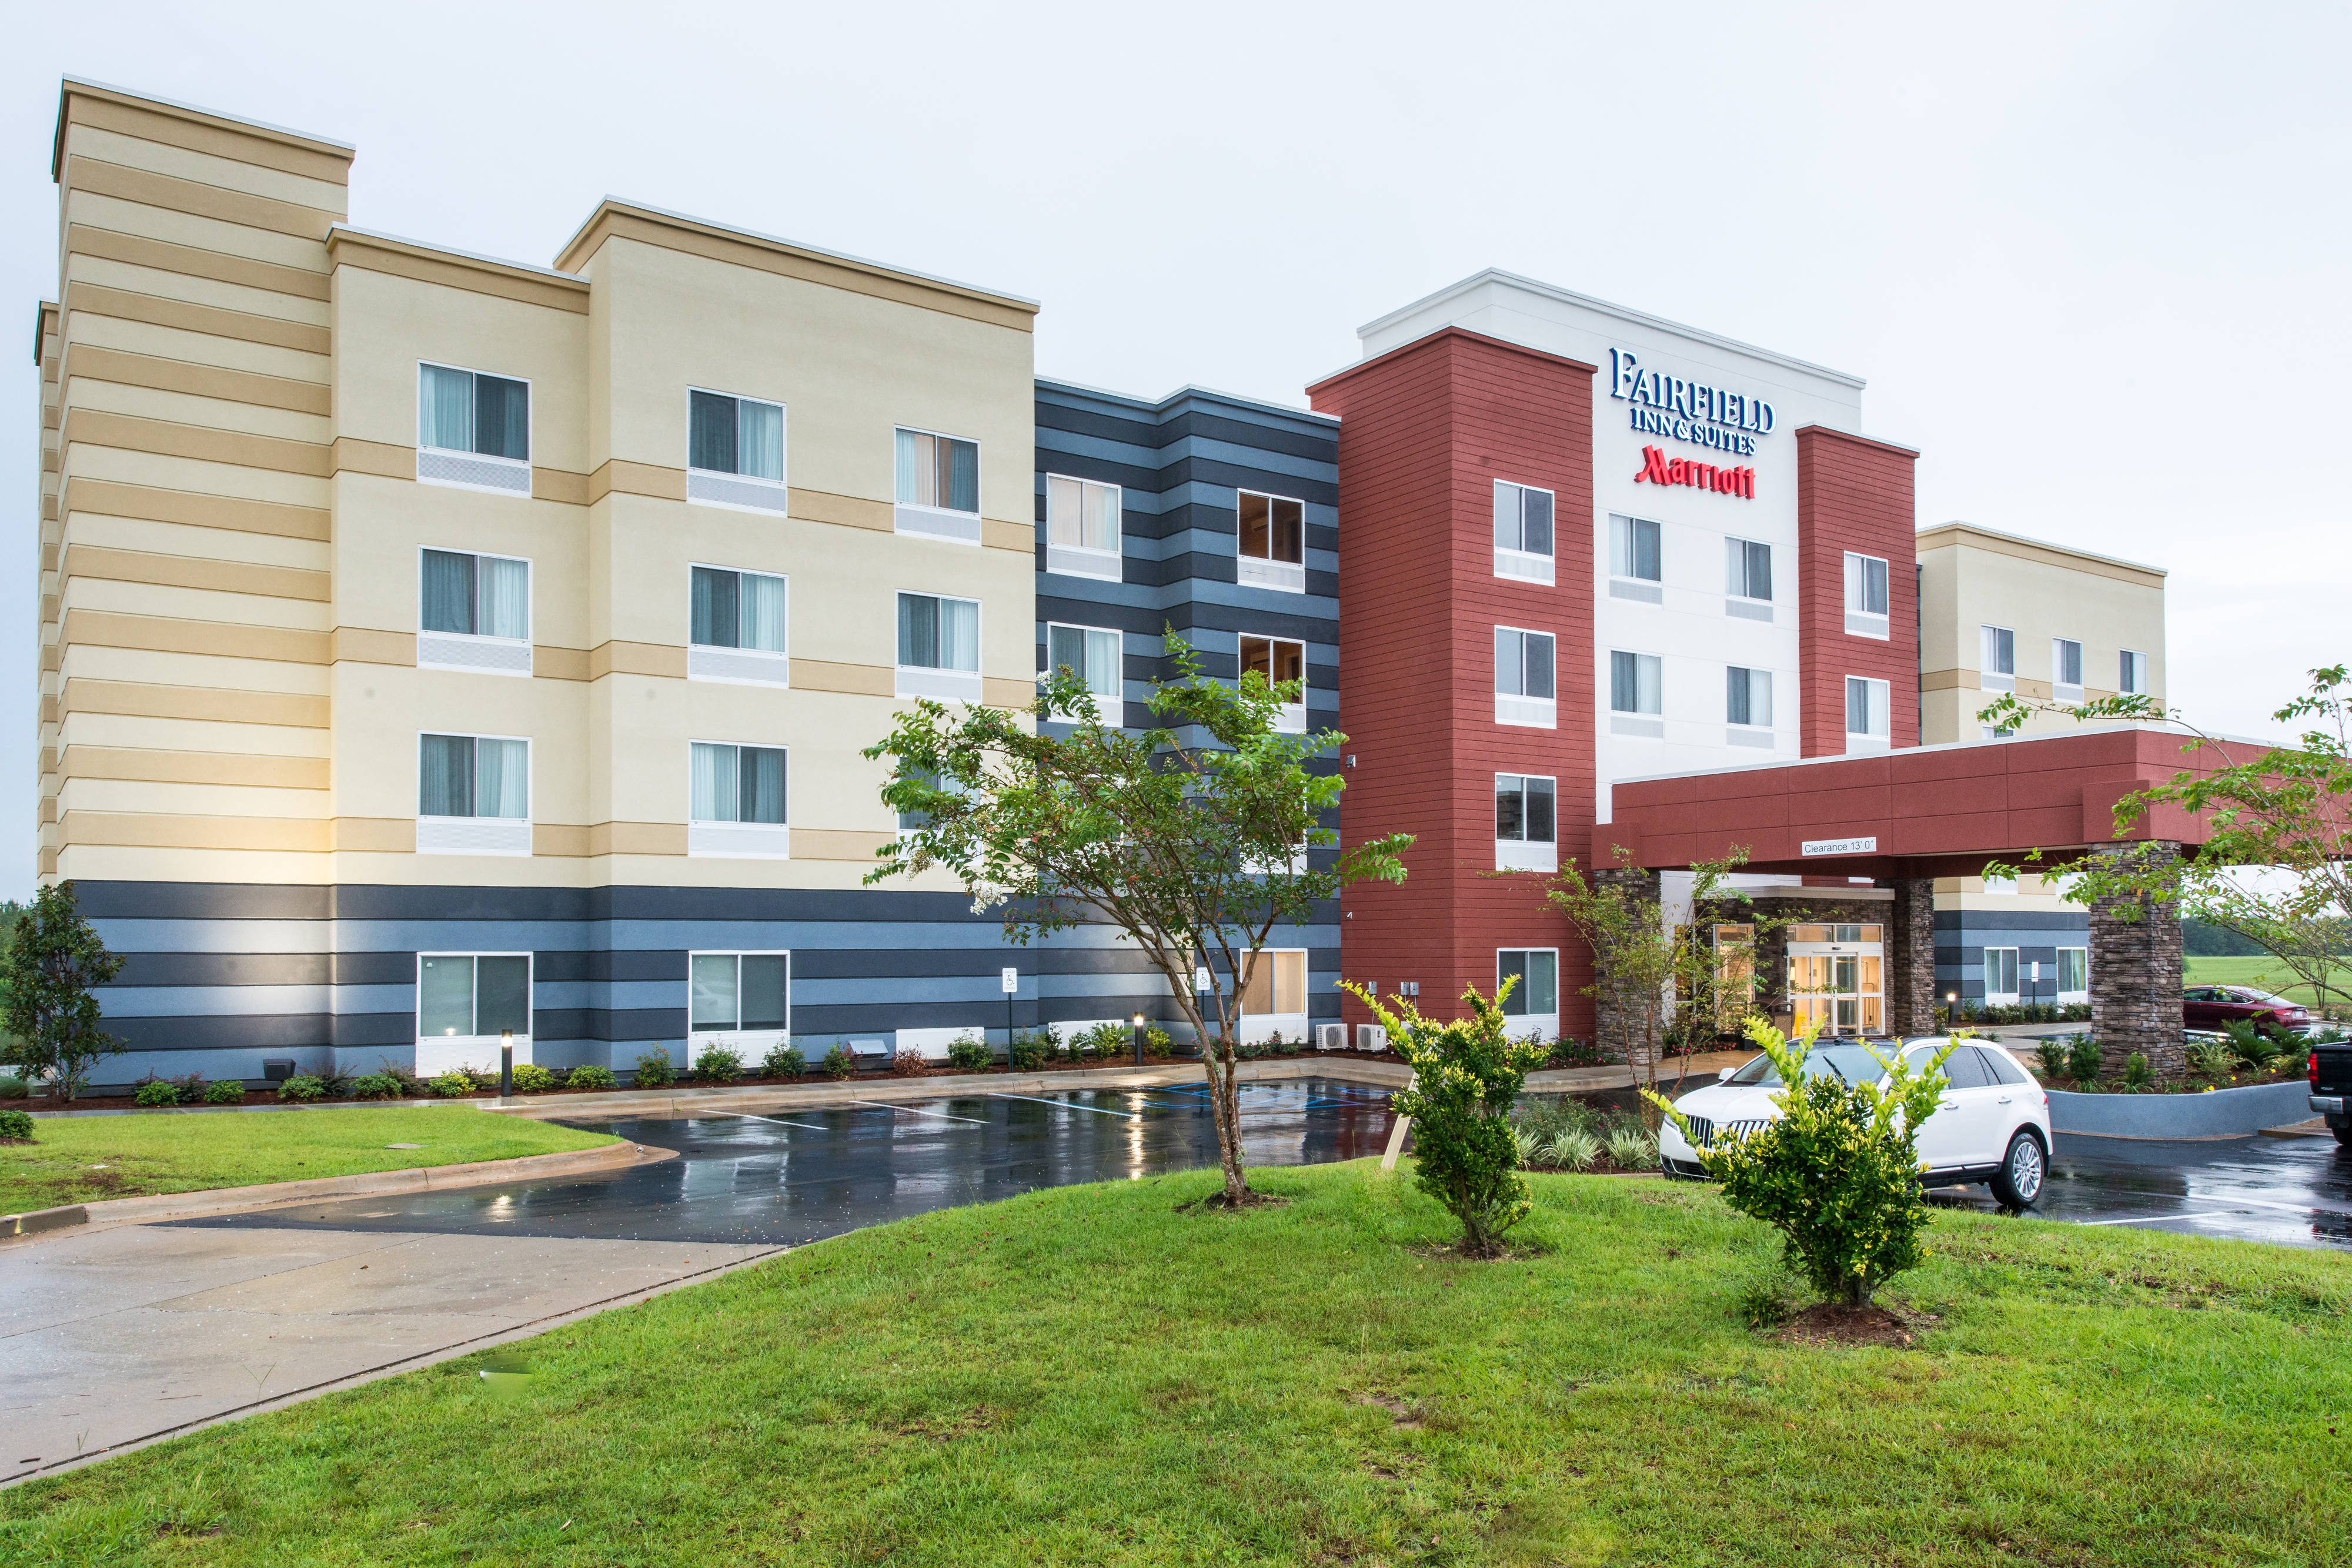 Fairfield Inn & Suite Atmore Entrance